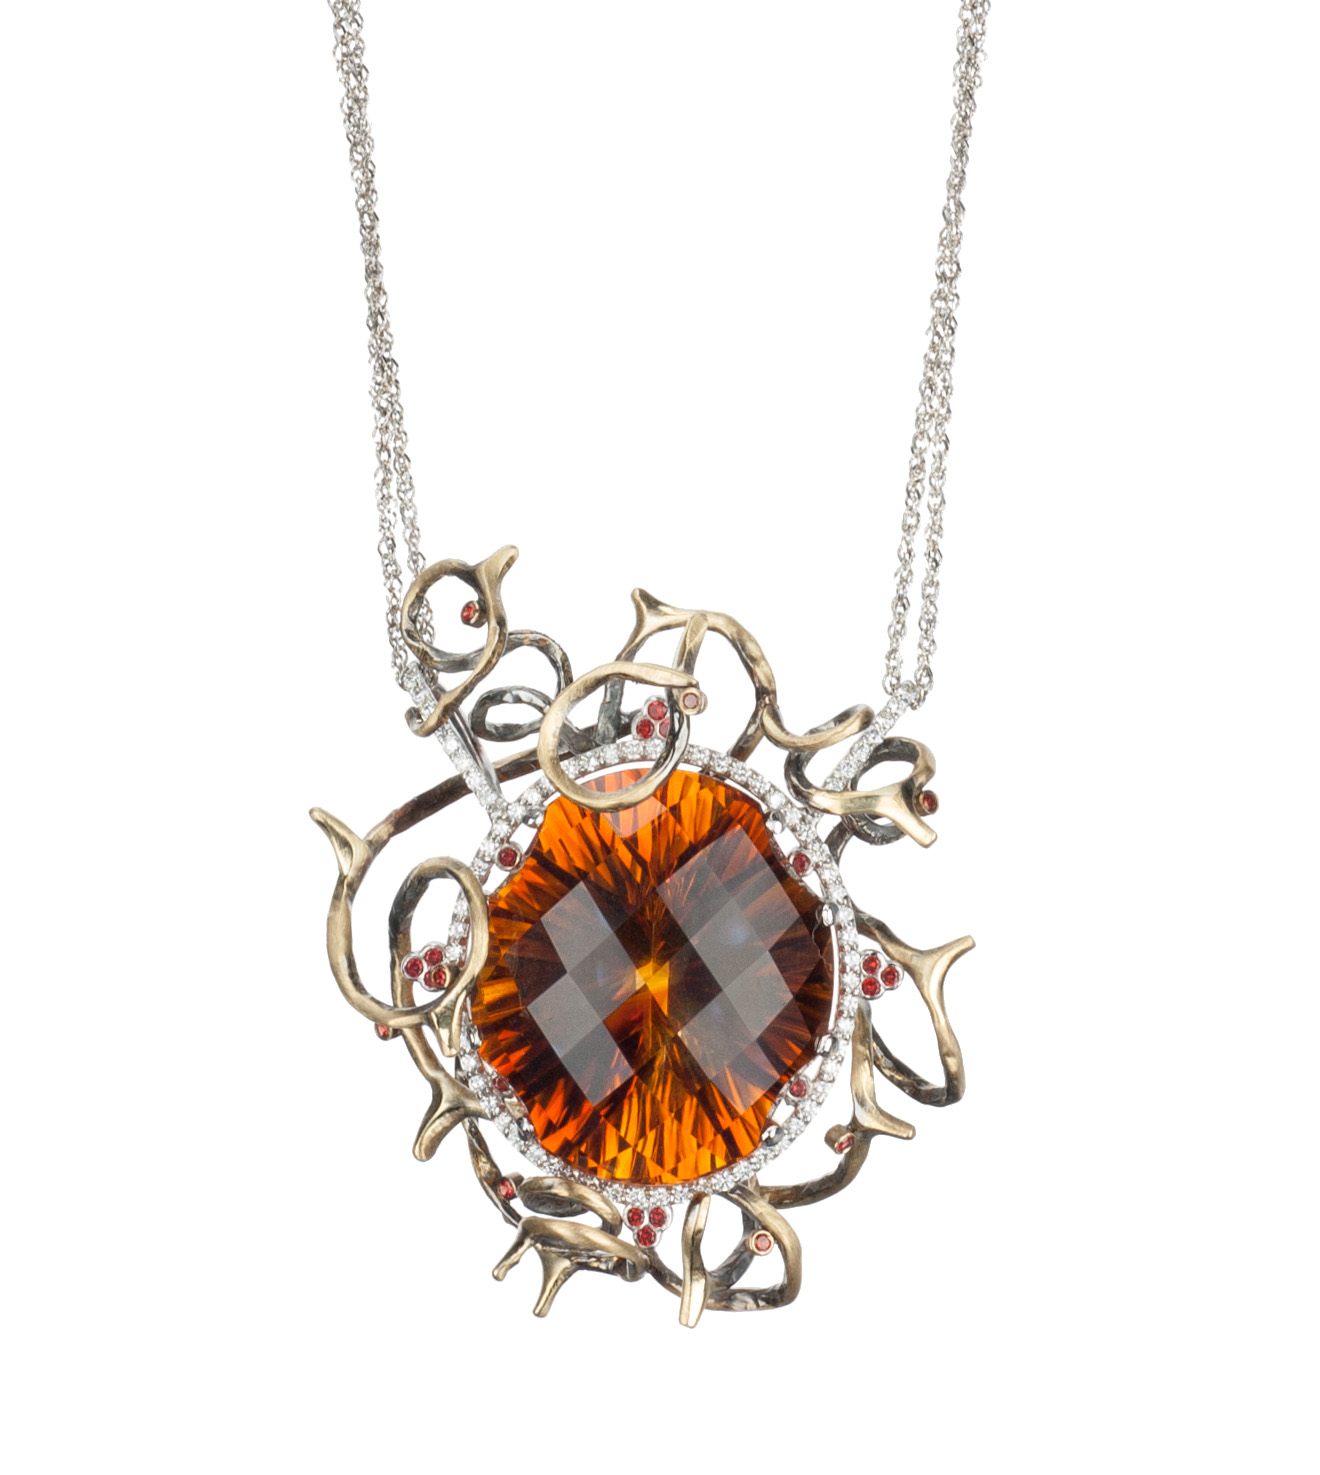 Thorny Orange Citrine Necklace